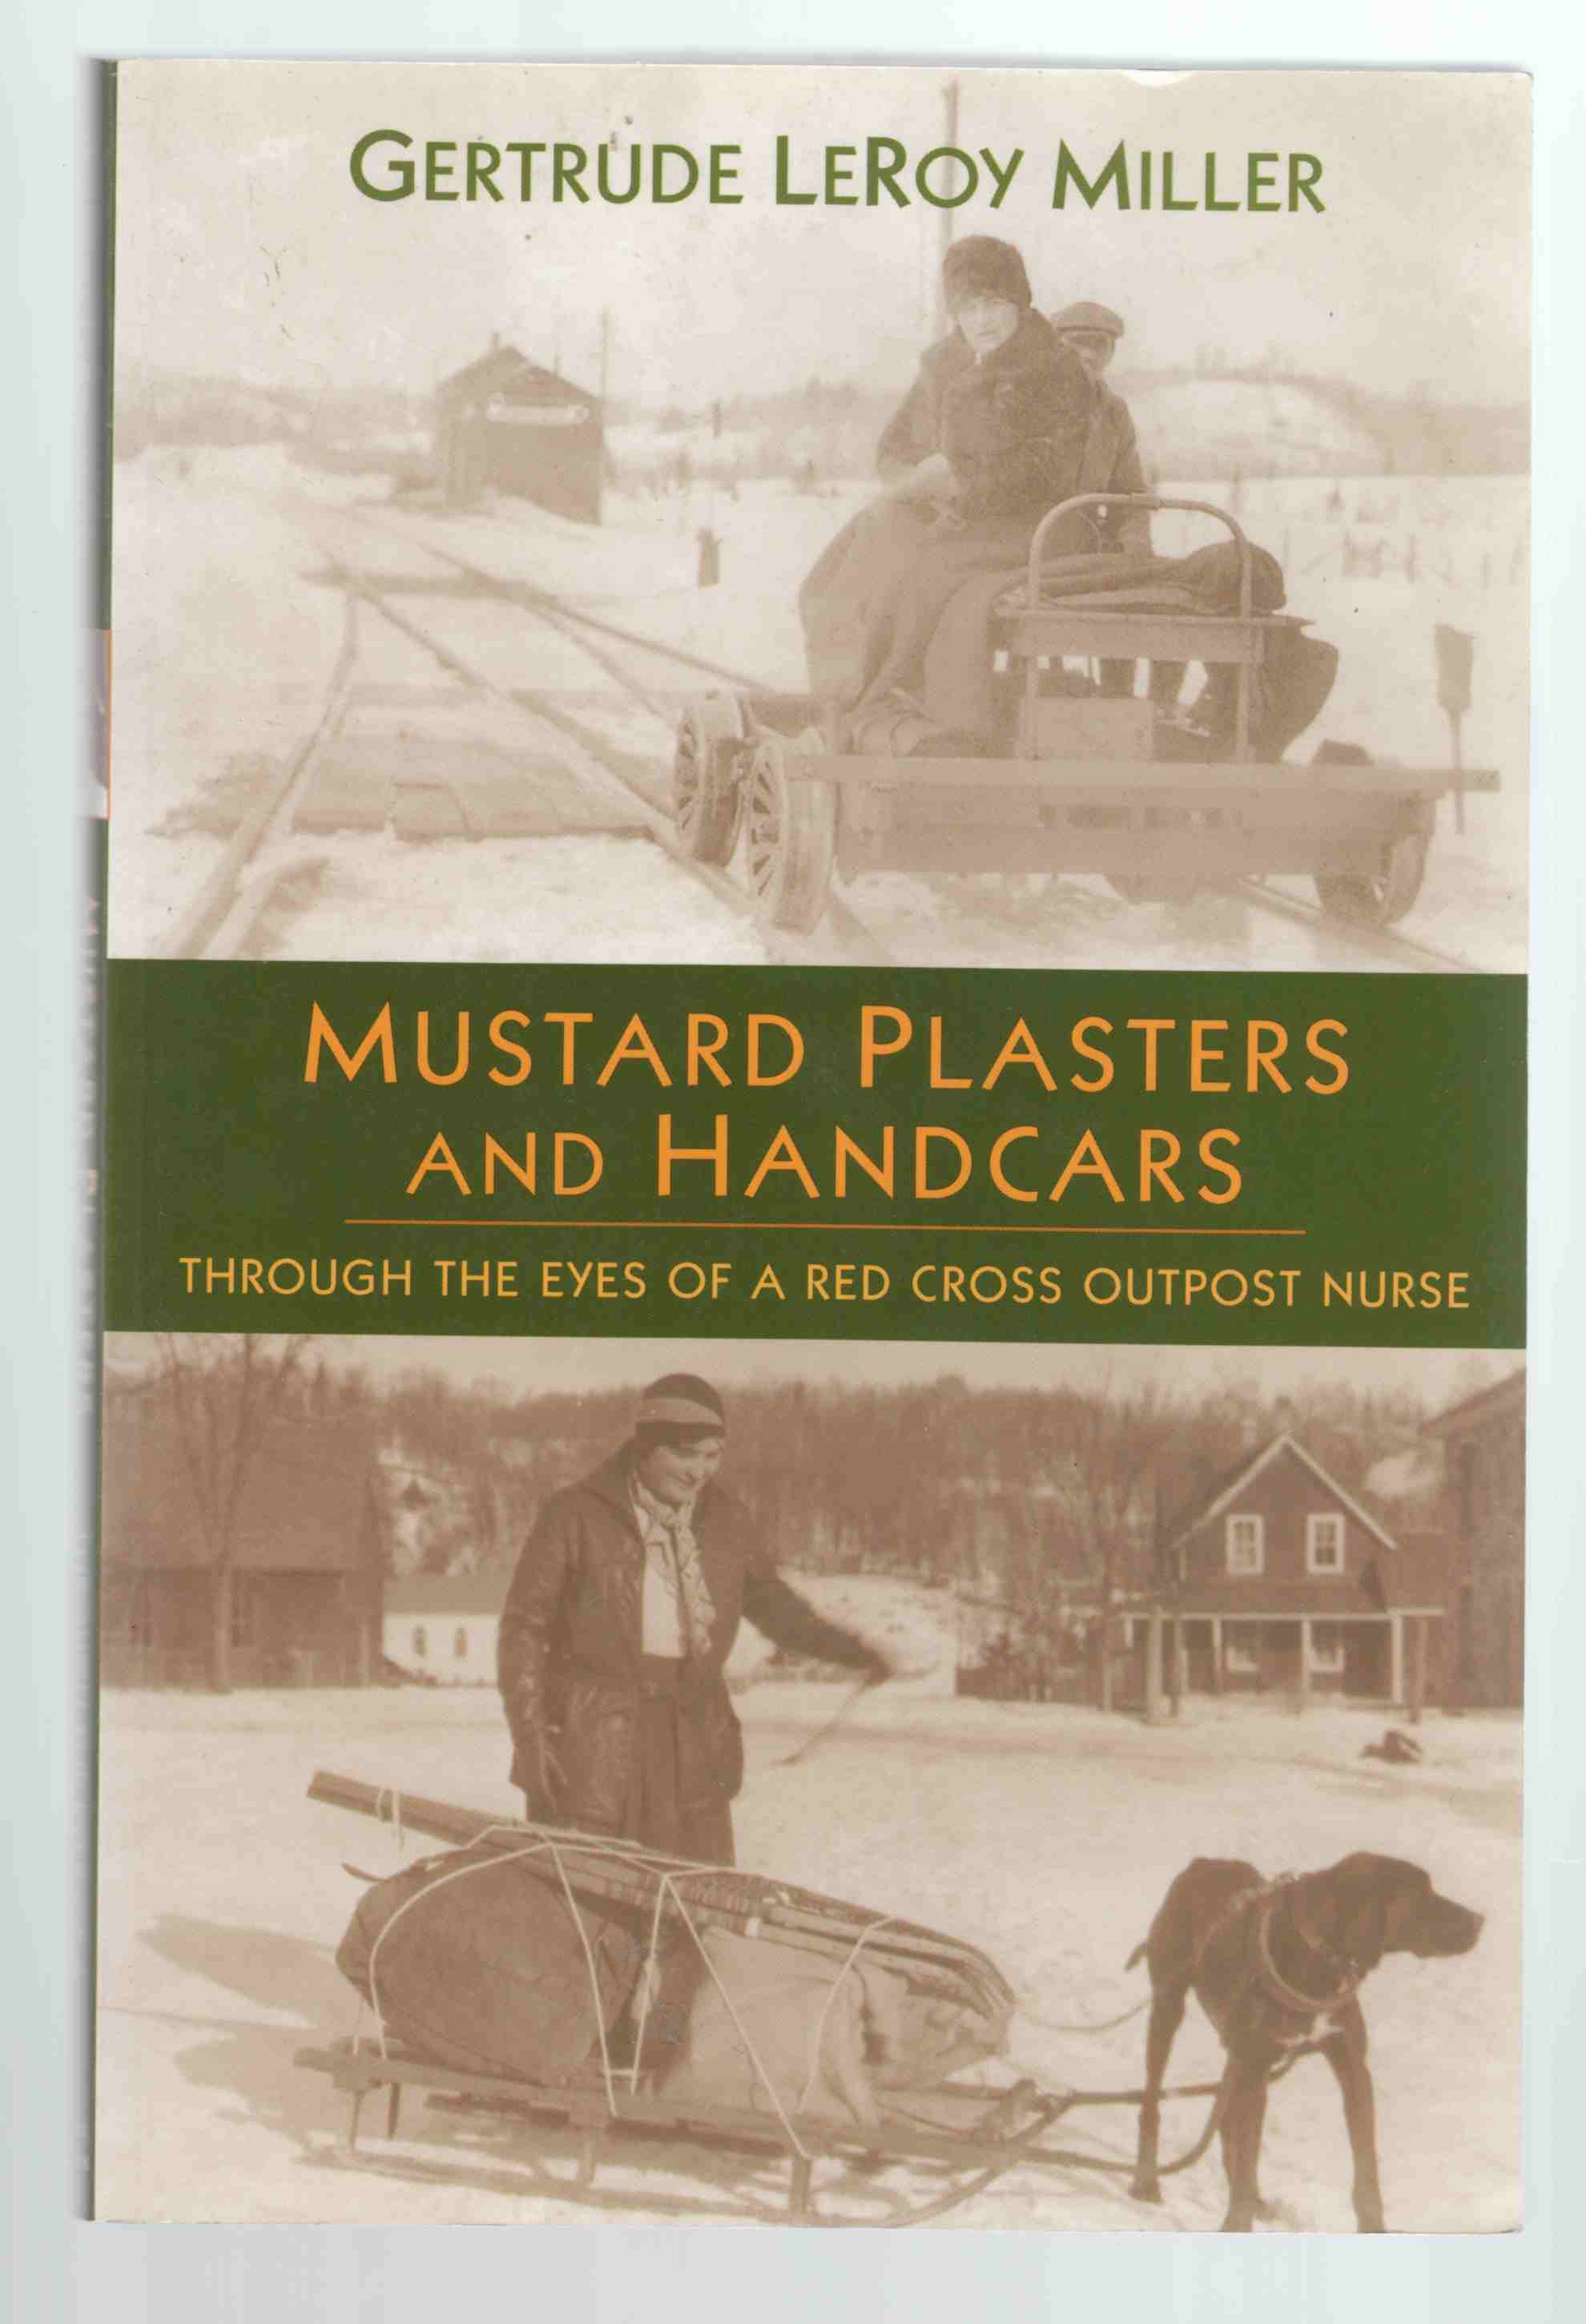 Image for Mustard Plasters and Handcars Through the Eyes of a Red Cross Outpost Nurse